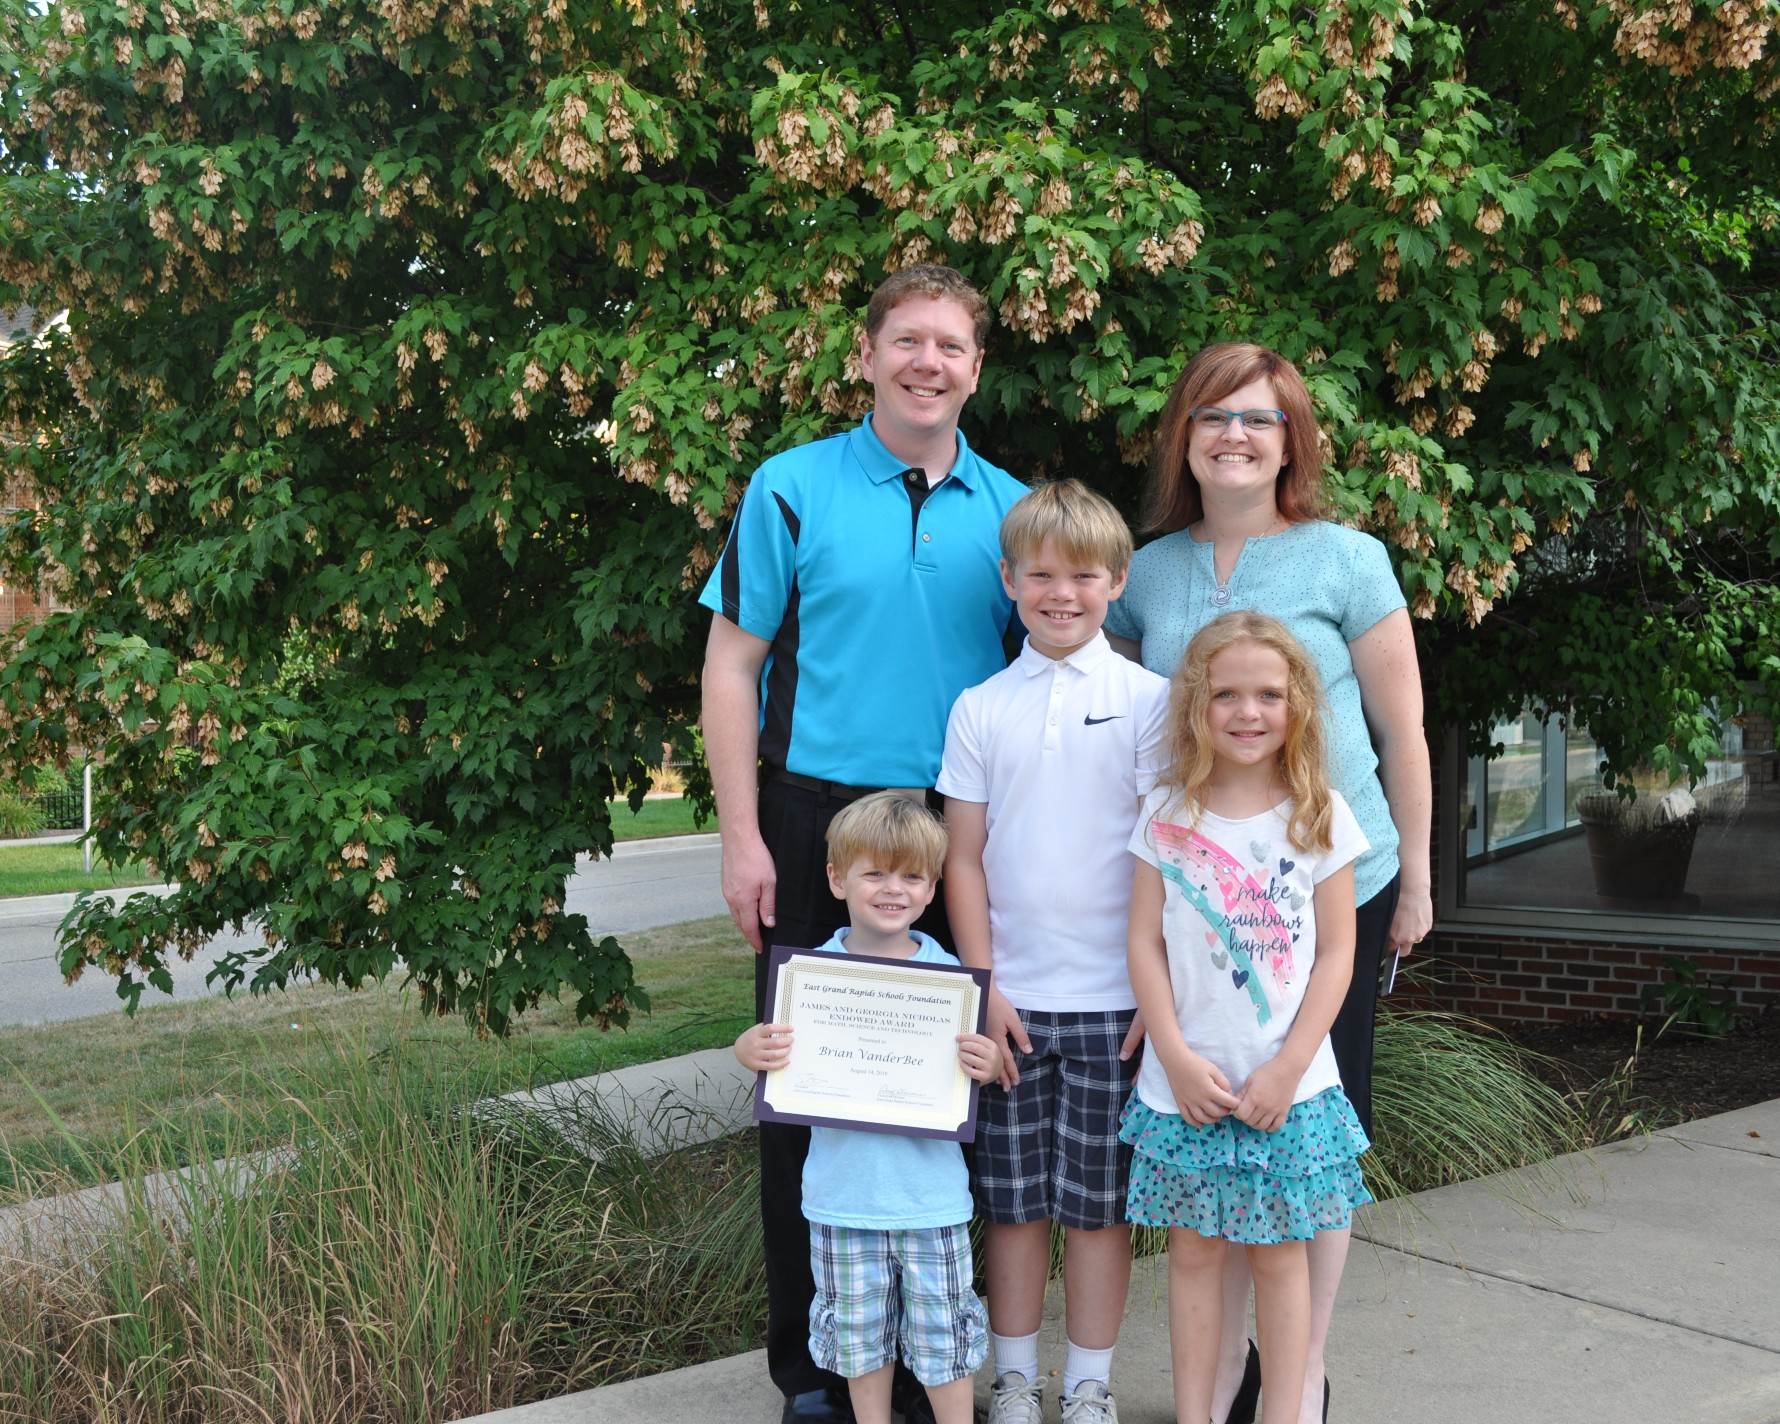 Brian VanderBee and his family